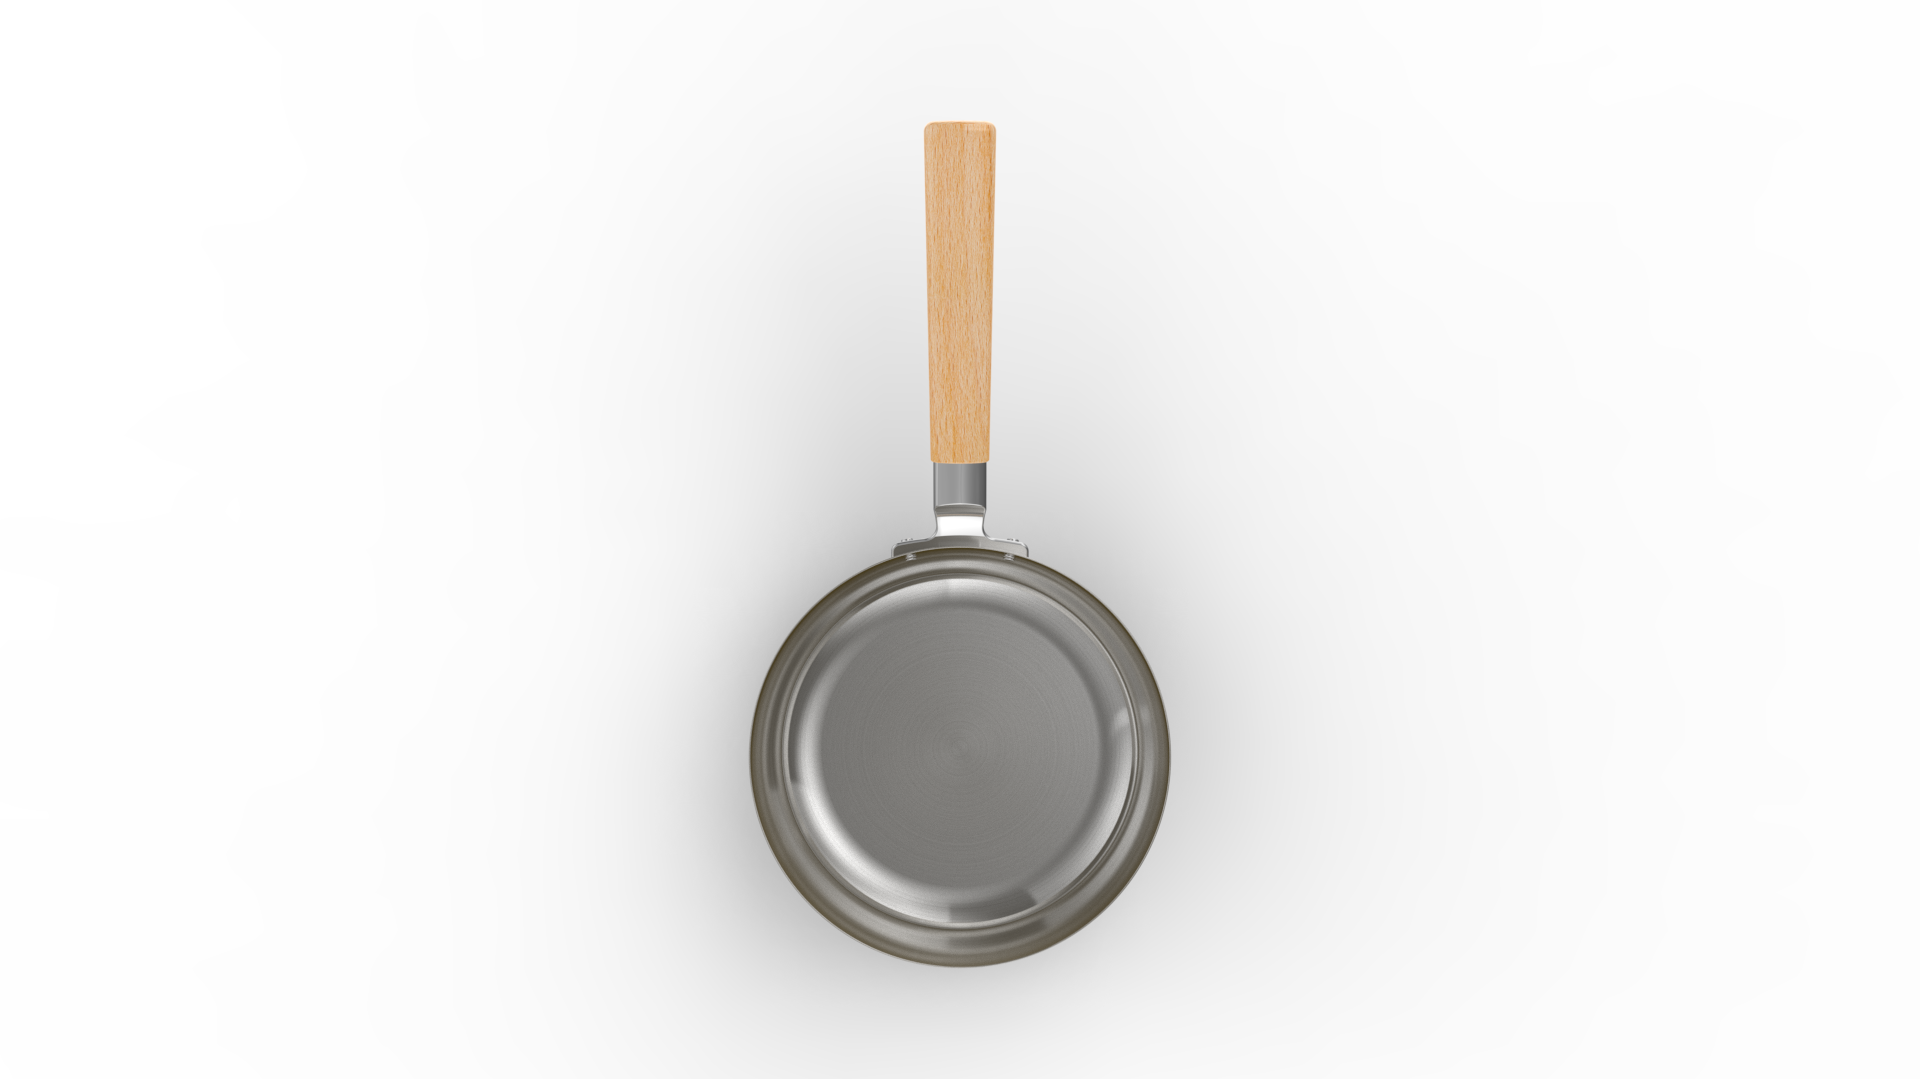 Silver Edition Iron Pan 7.1 Inch